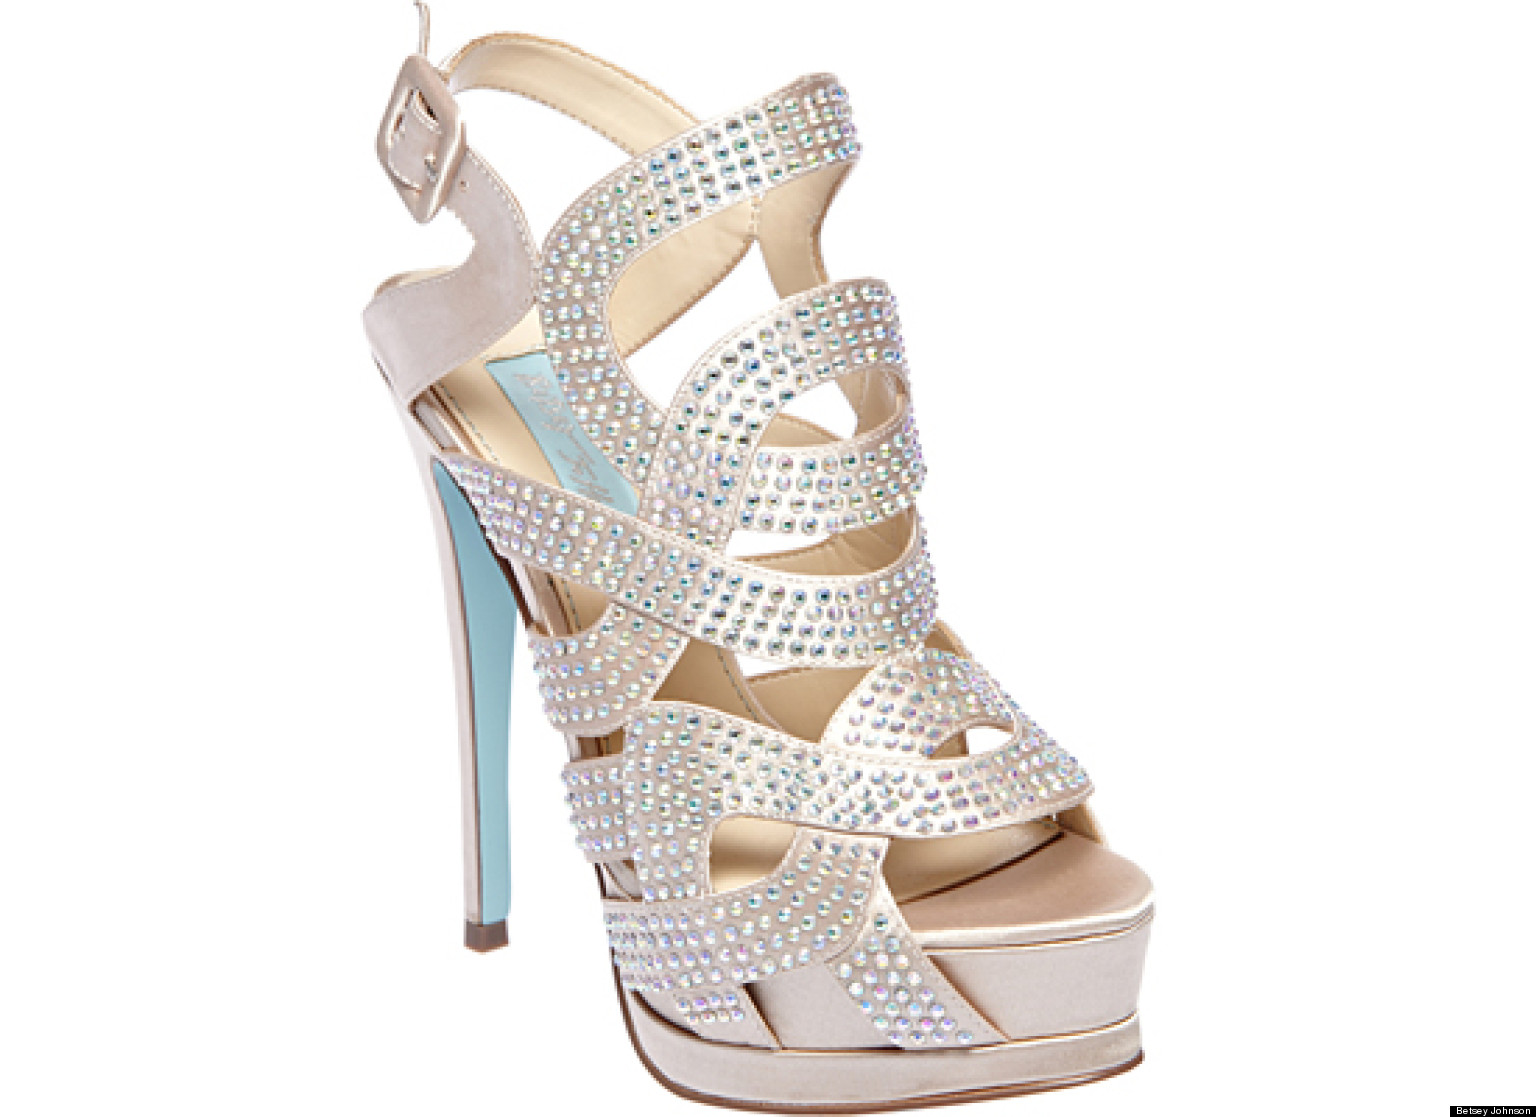 Betsey Johnson's Bridal Shoe Collection To Debut On Zappos.com (PHOTOS